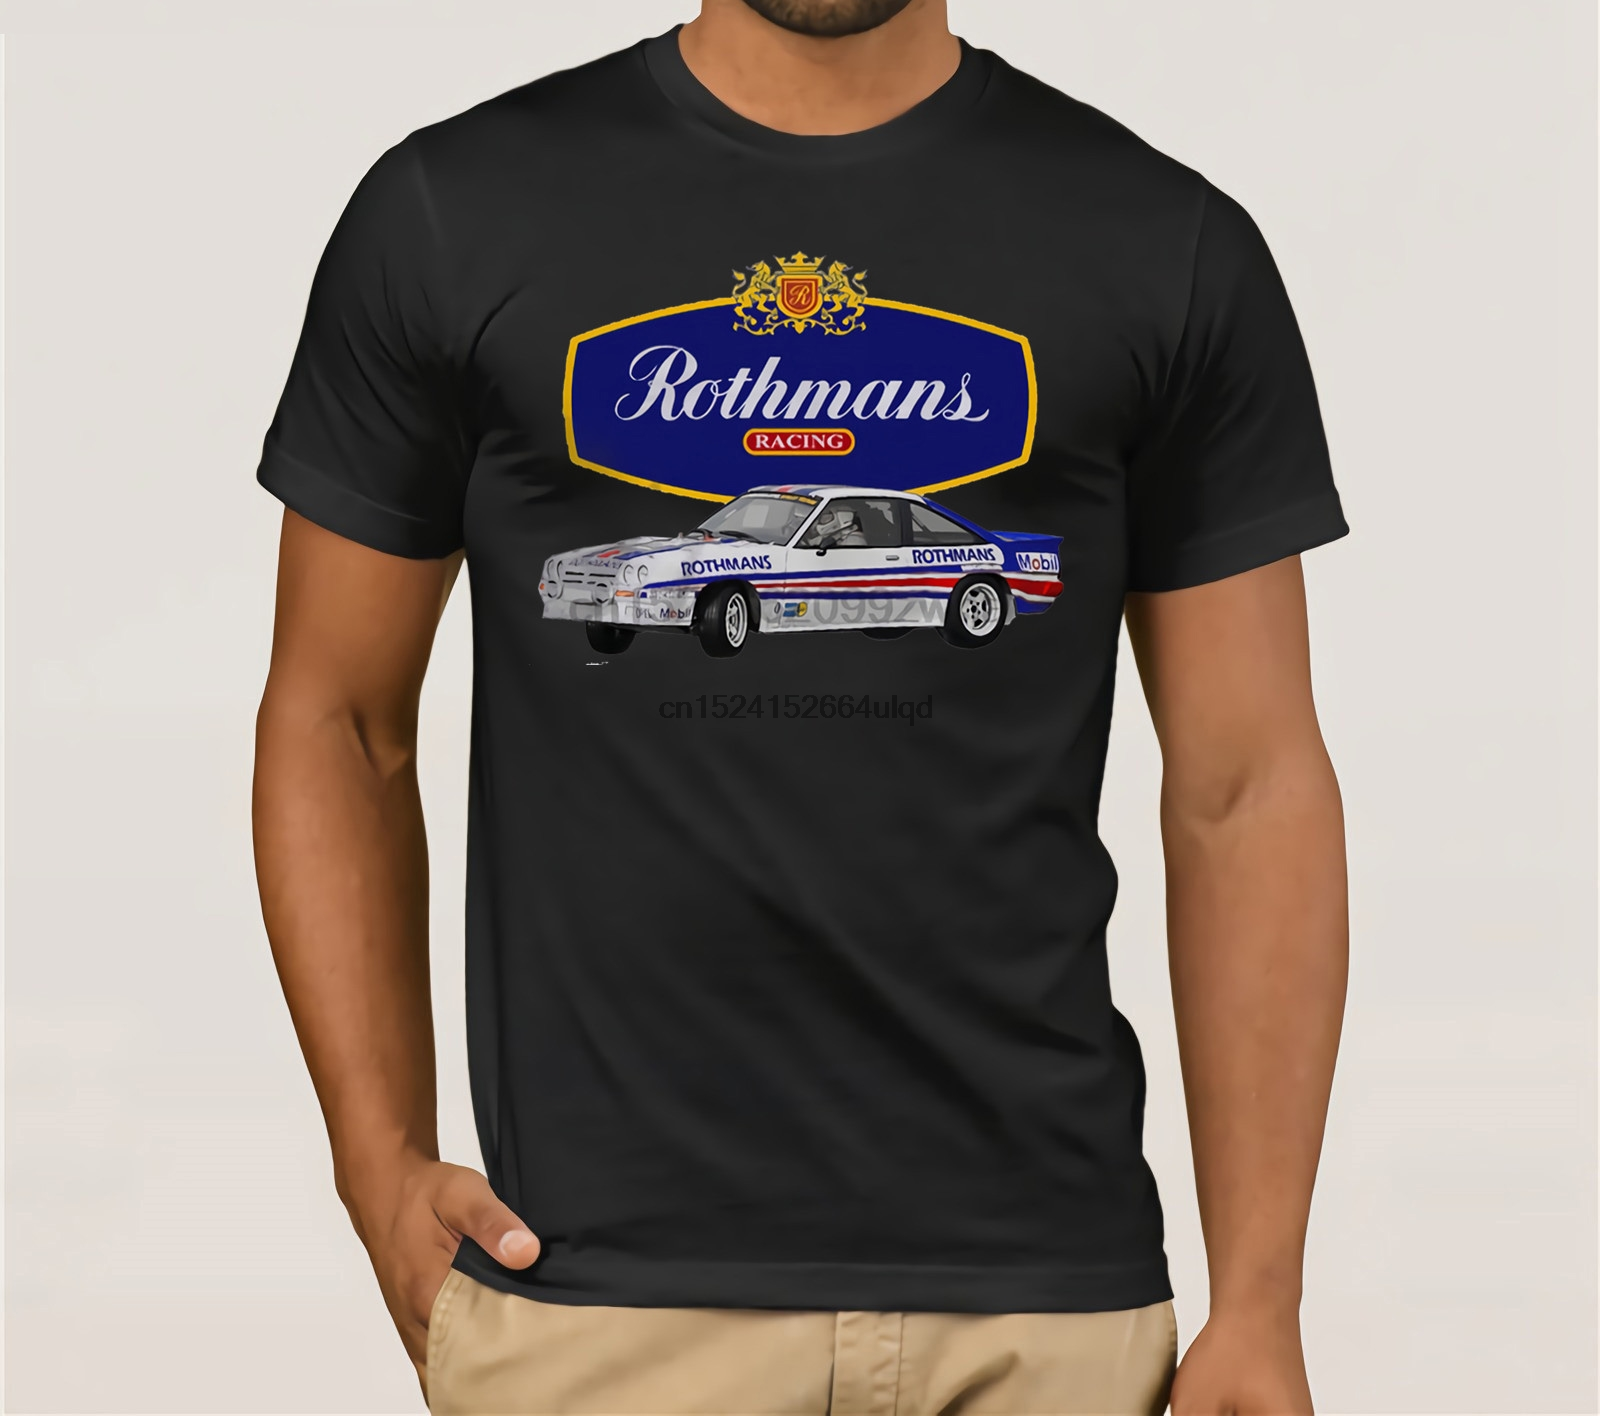 Evolution of Man Ari Vatanen Rothmans Escort RS1800 classic rally car t-shirt